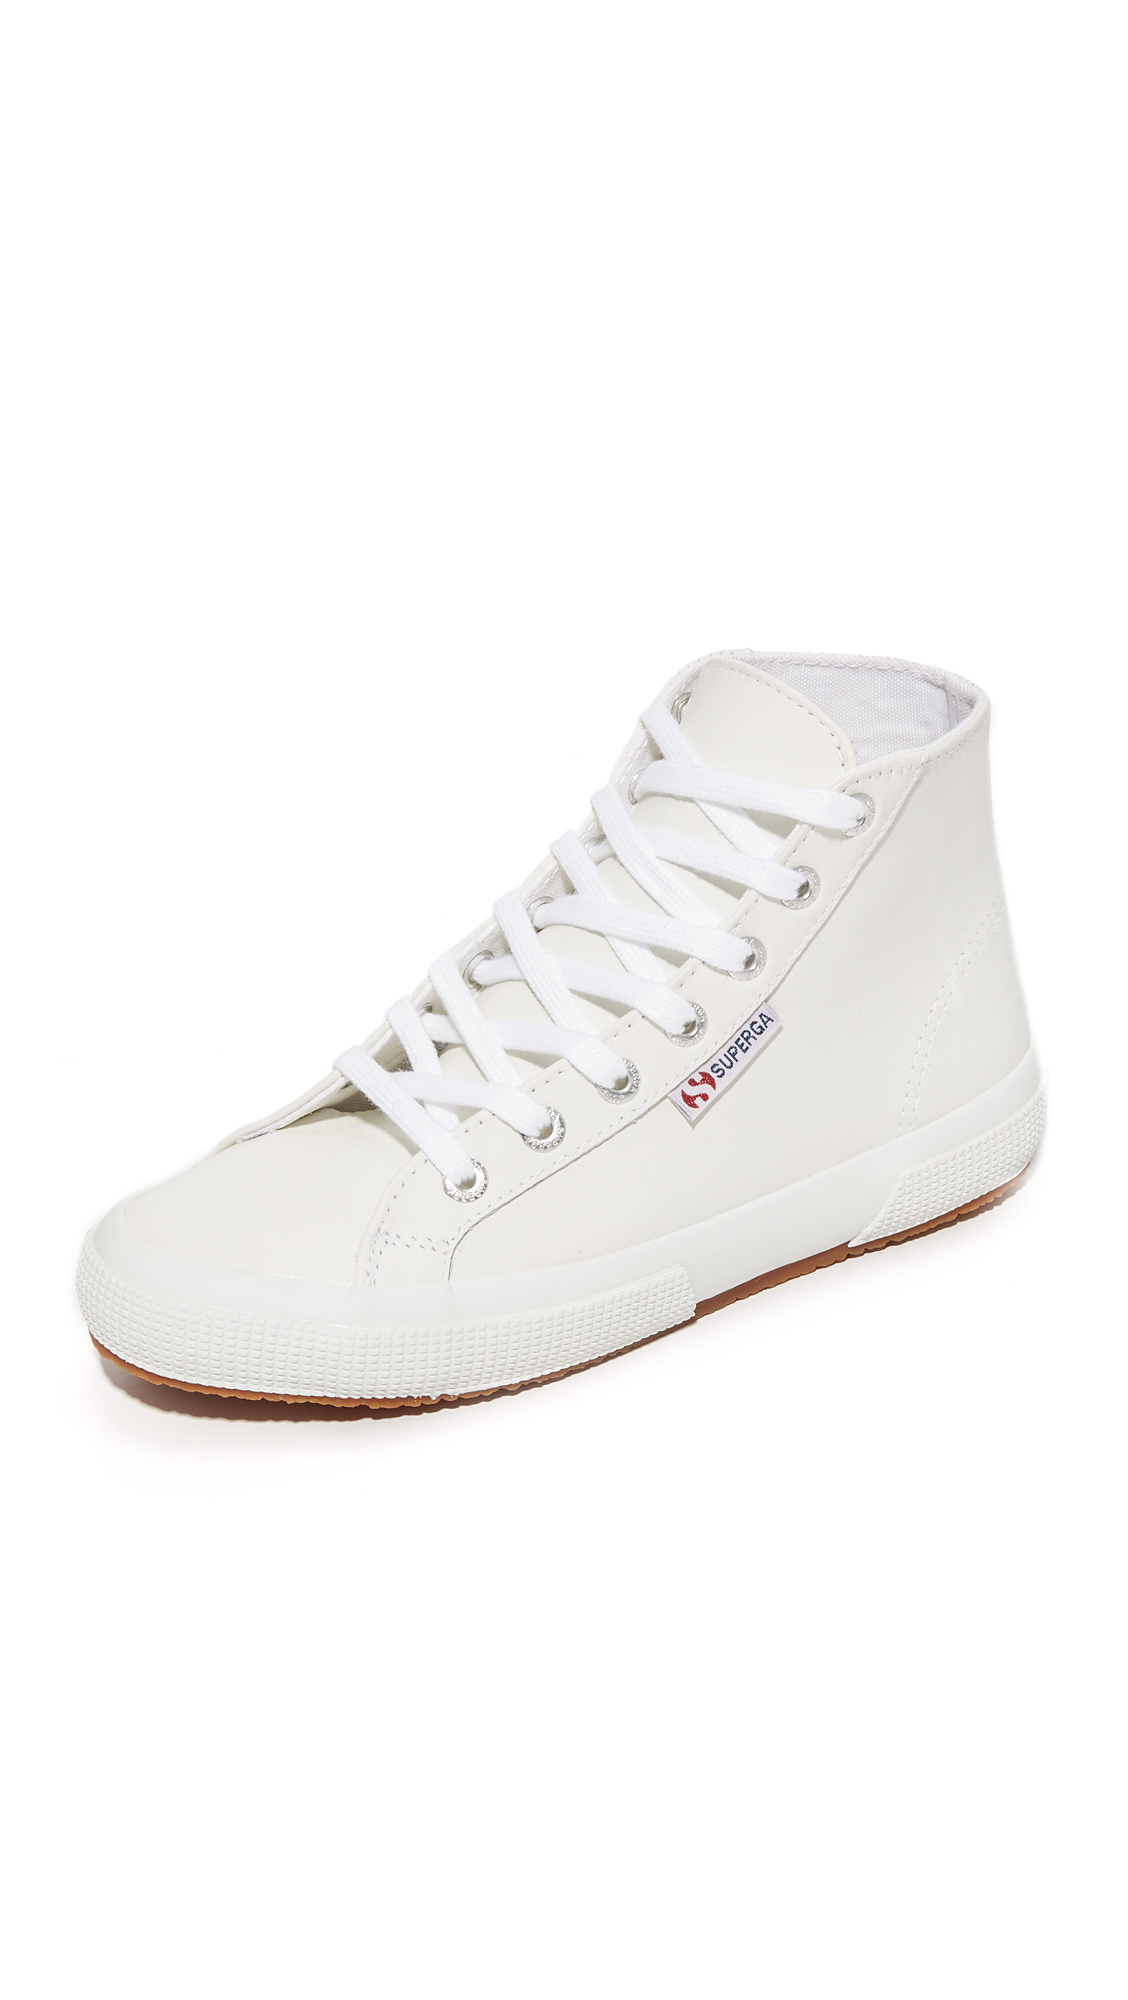 Casual Superga high top sneakers rendered in sturdy leather. Laces thread through logo embossed grommets. Rubber sidewall and crepe sole. Leather: Cowhide. Imported, Vietnam. This item cannot be gift boxed. Available sizes: 6,6.5,7,7.5,8,8.5,9,9.5,10